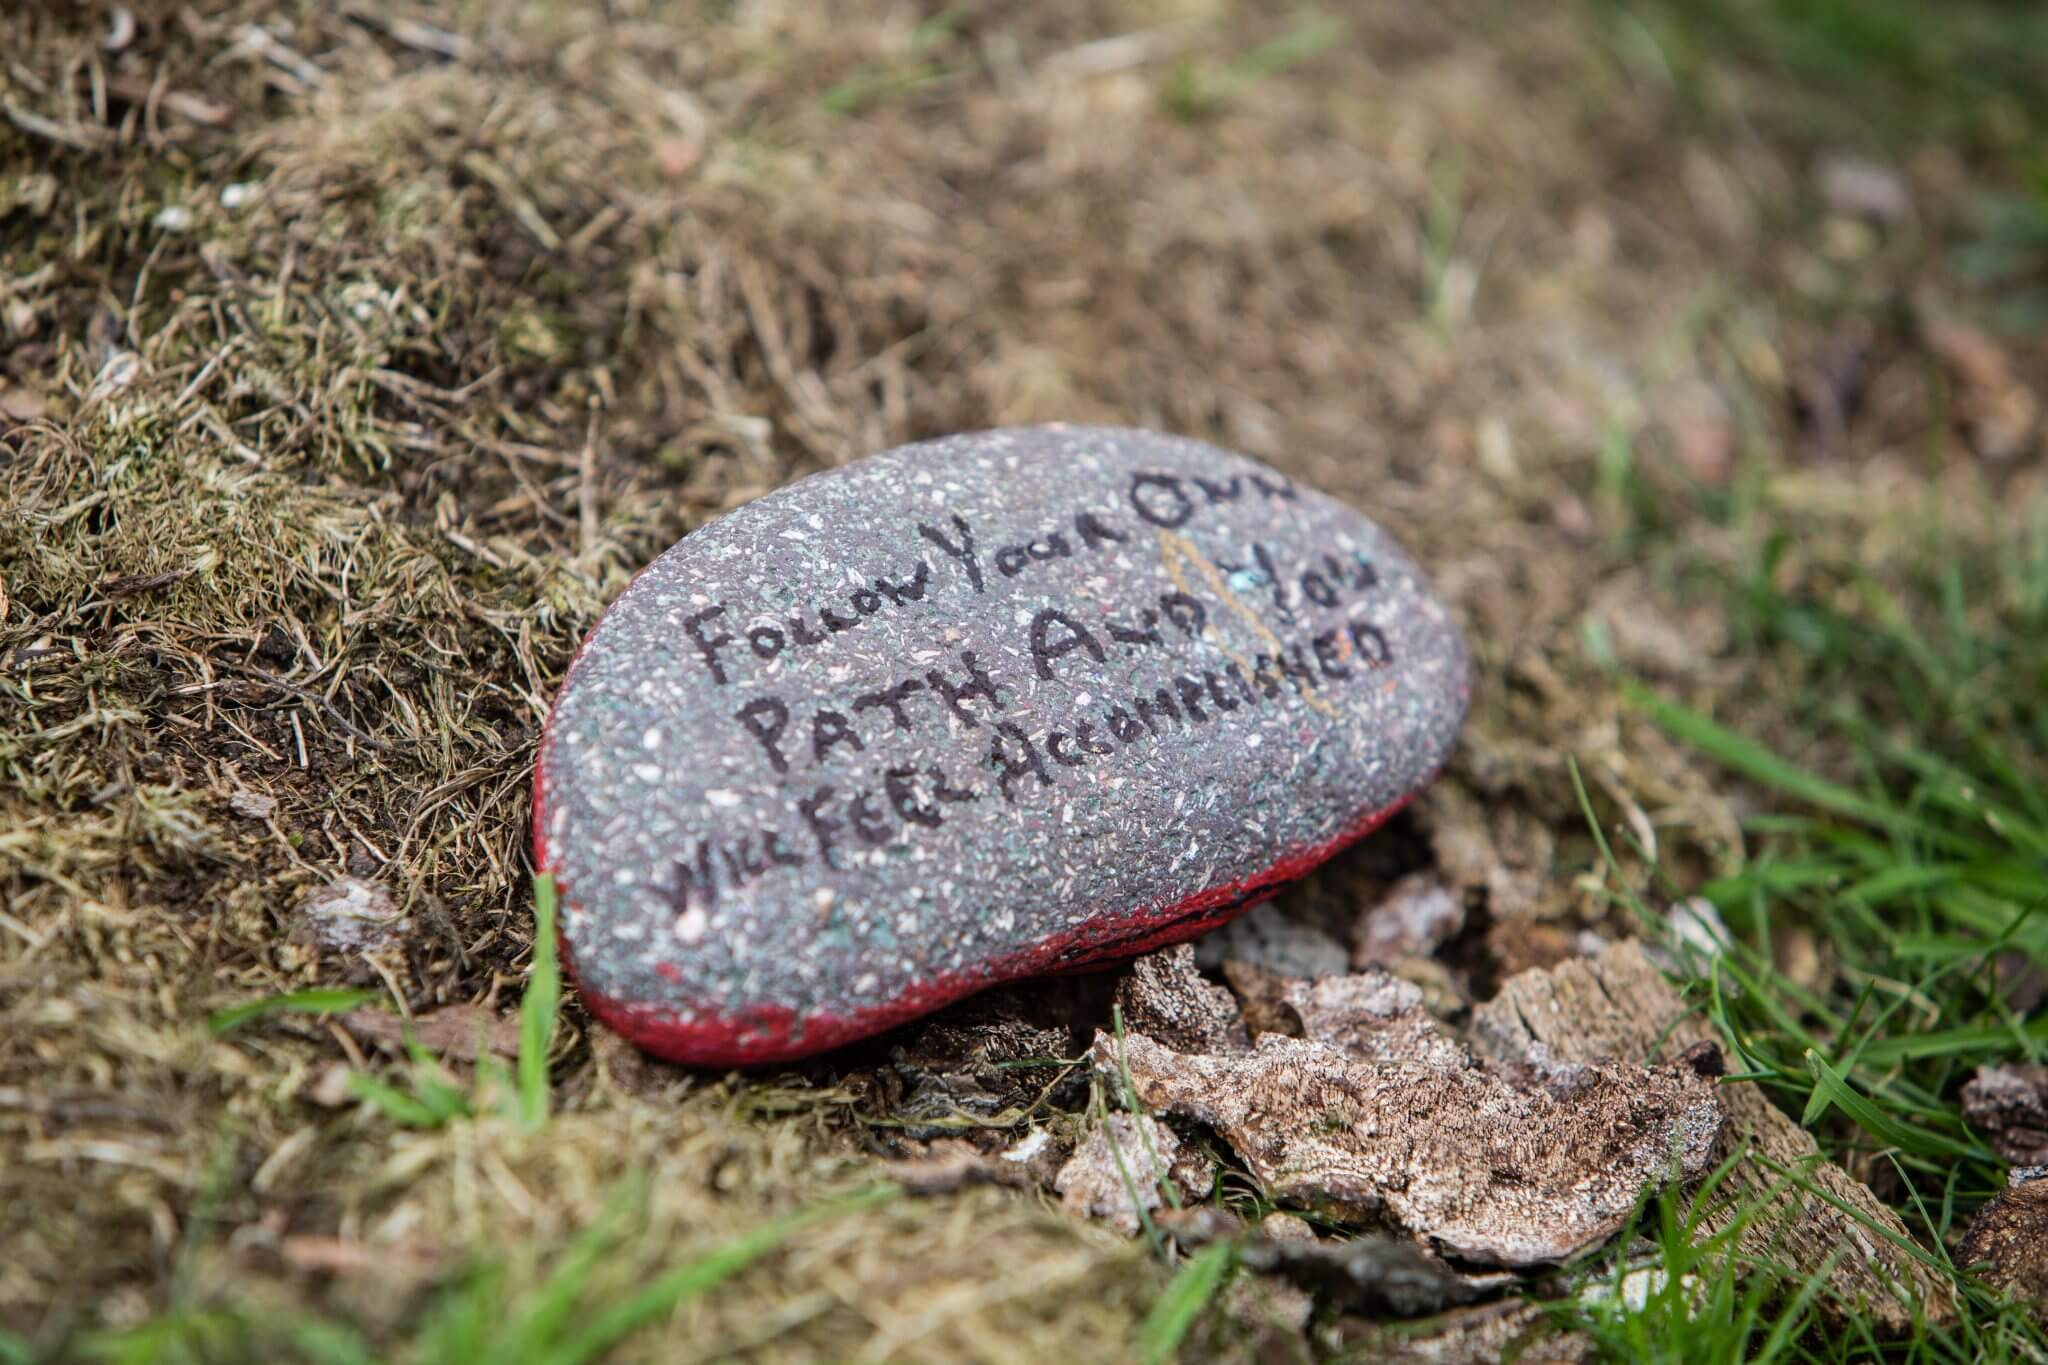 Stone with motivational message painted on